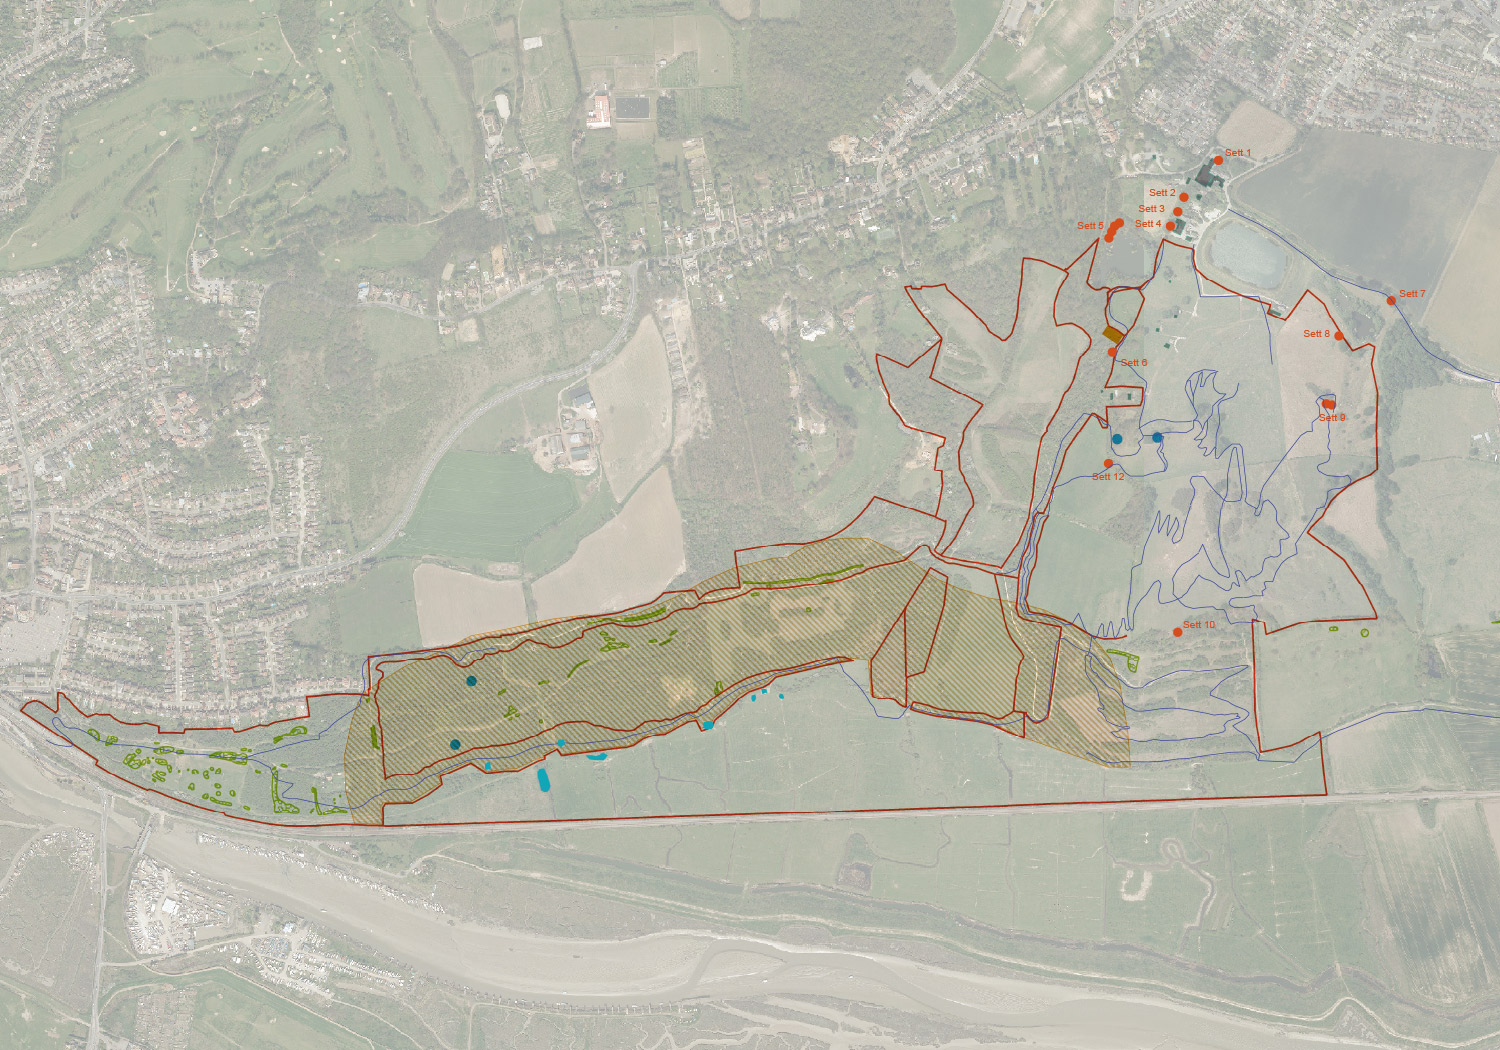 Projects-RecreationTourism-Hadleigh-CP-Plan-1500x1050